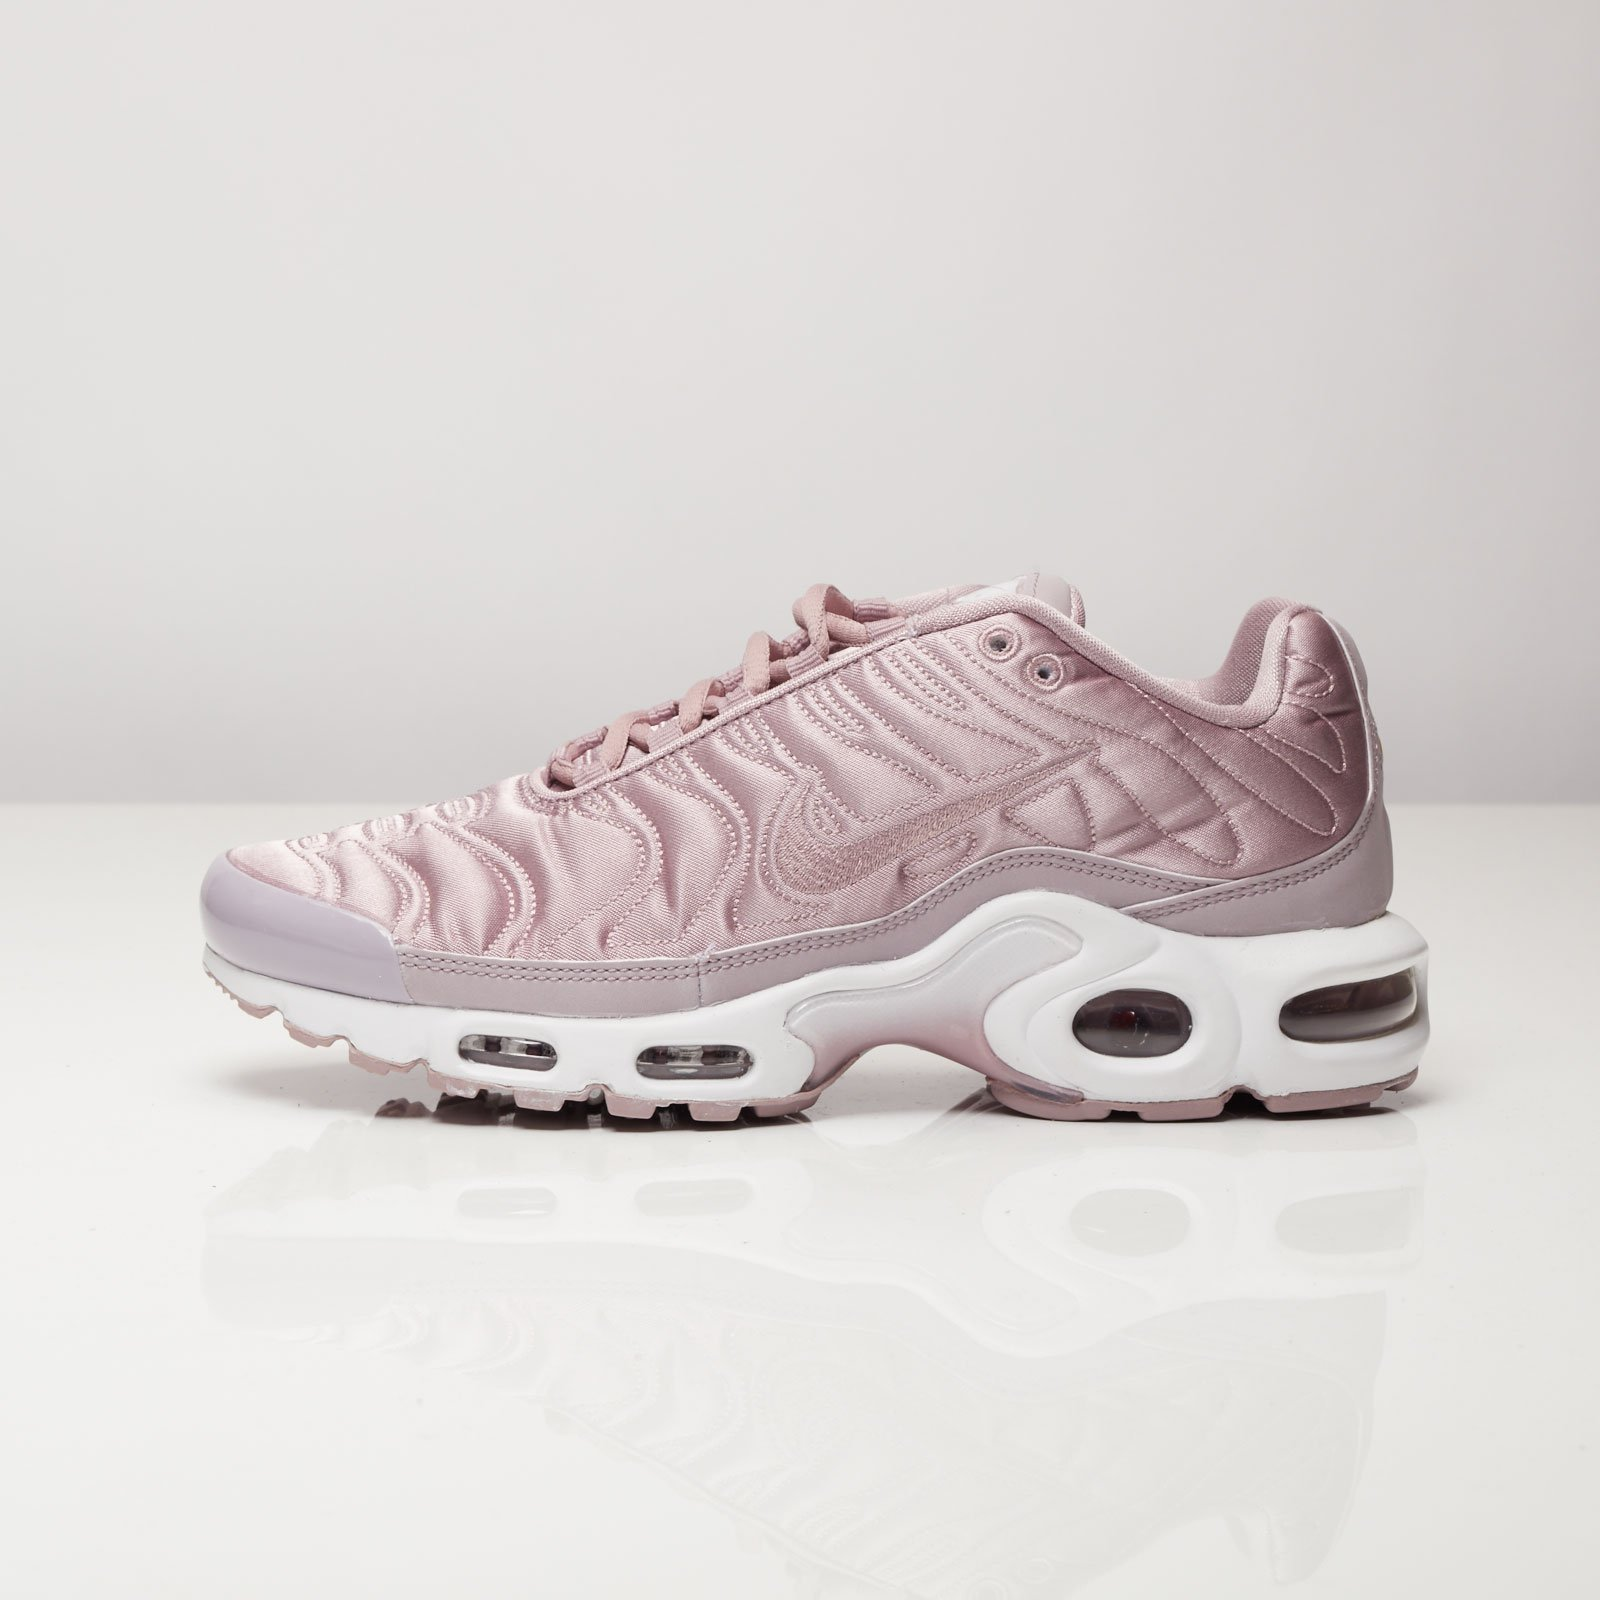 save off abf33 af68d Nike Wmns Air Max Plus SE - 830768-551 - Sneakersnstuff   sneakers    streetwear online since 1999